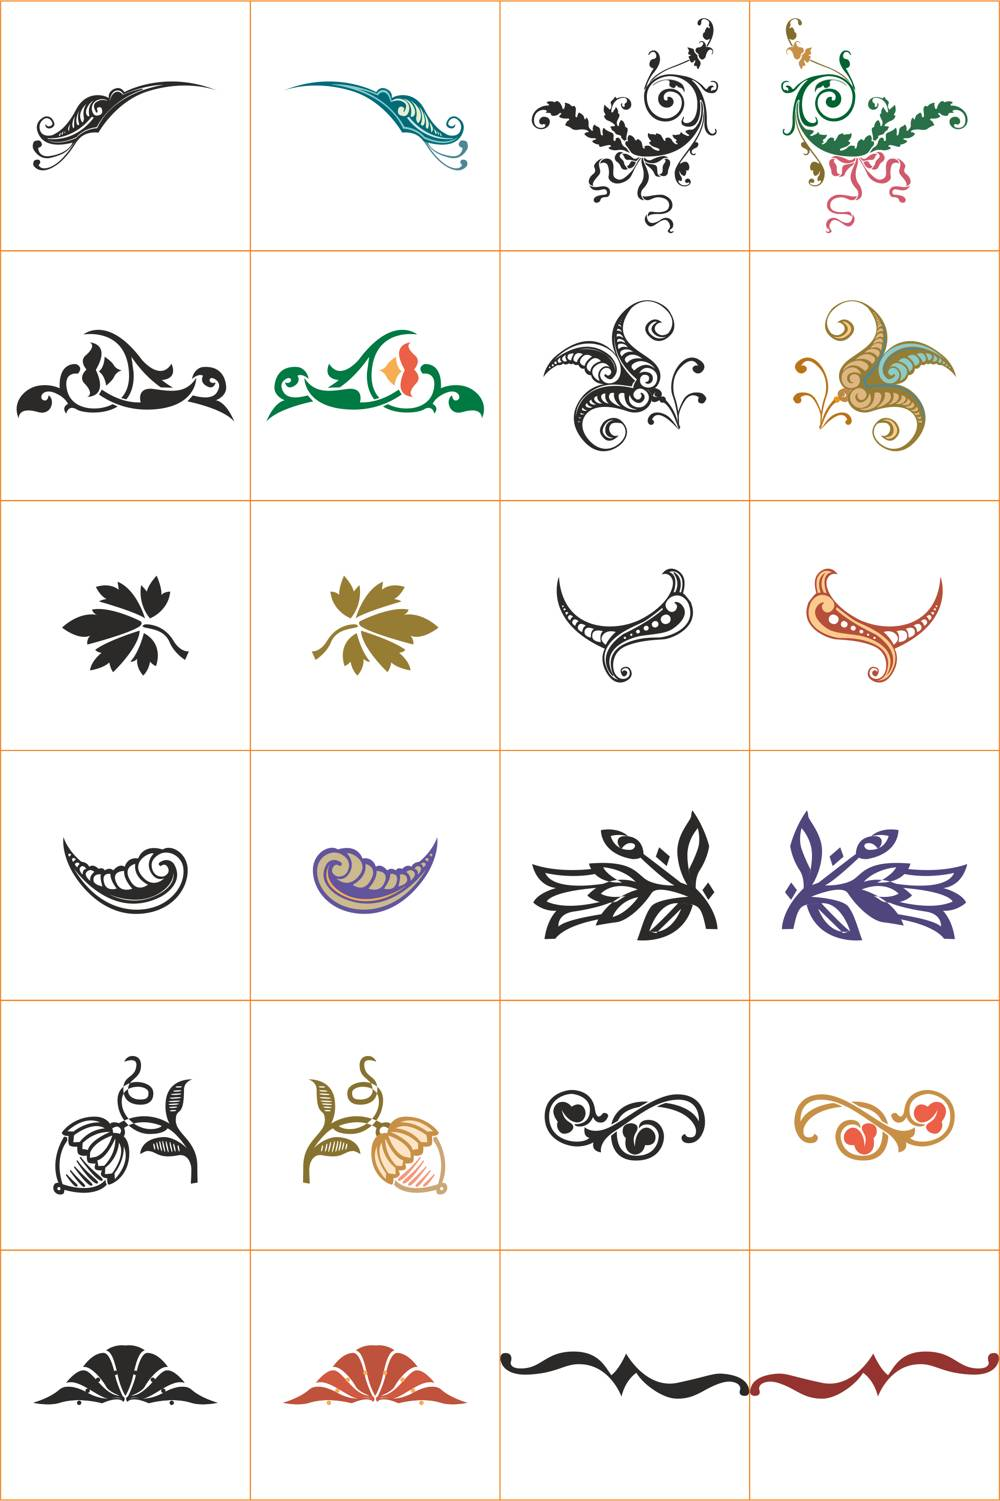 Floral Ornaments Collection File Free CDR Vectors Art